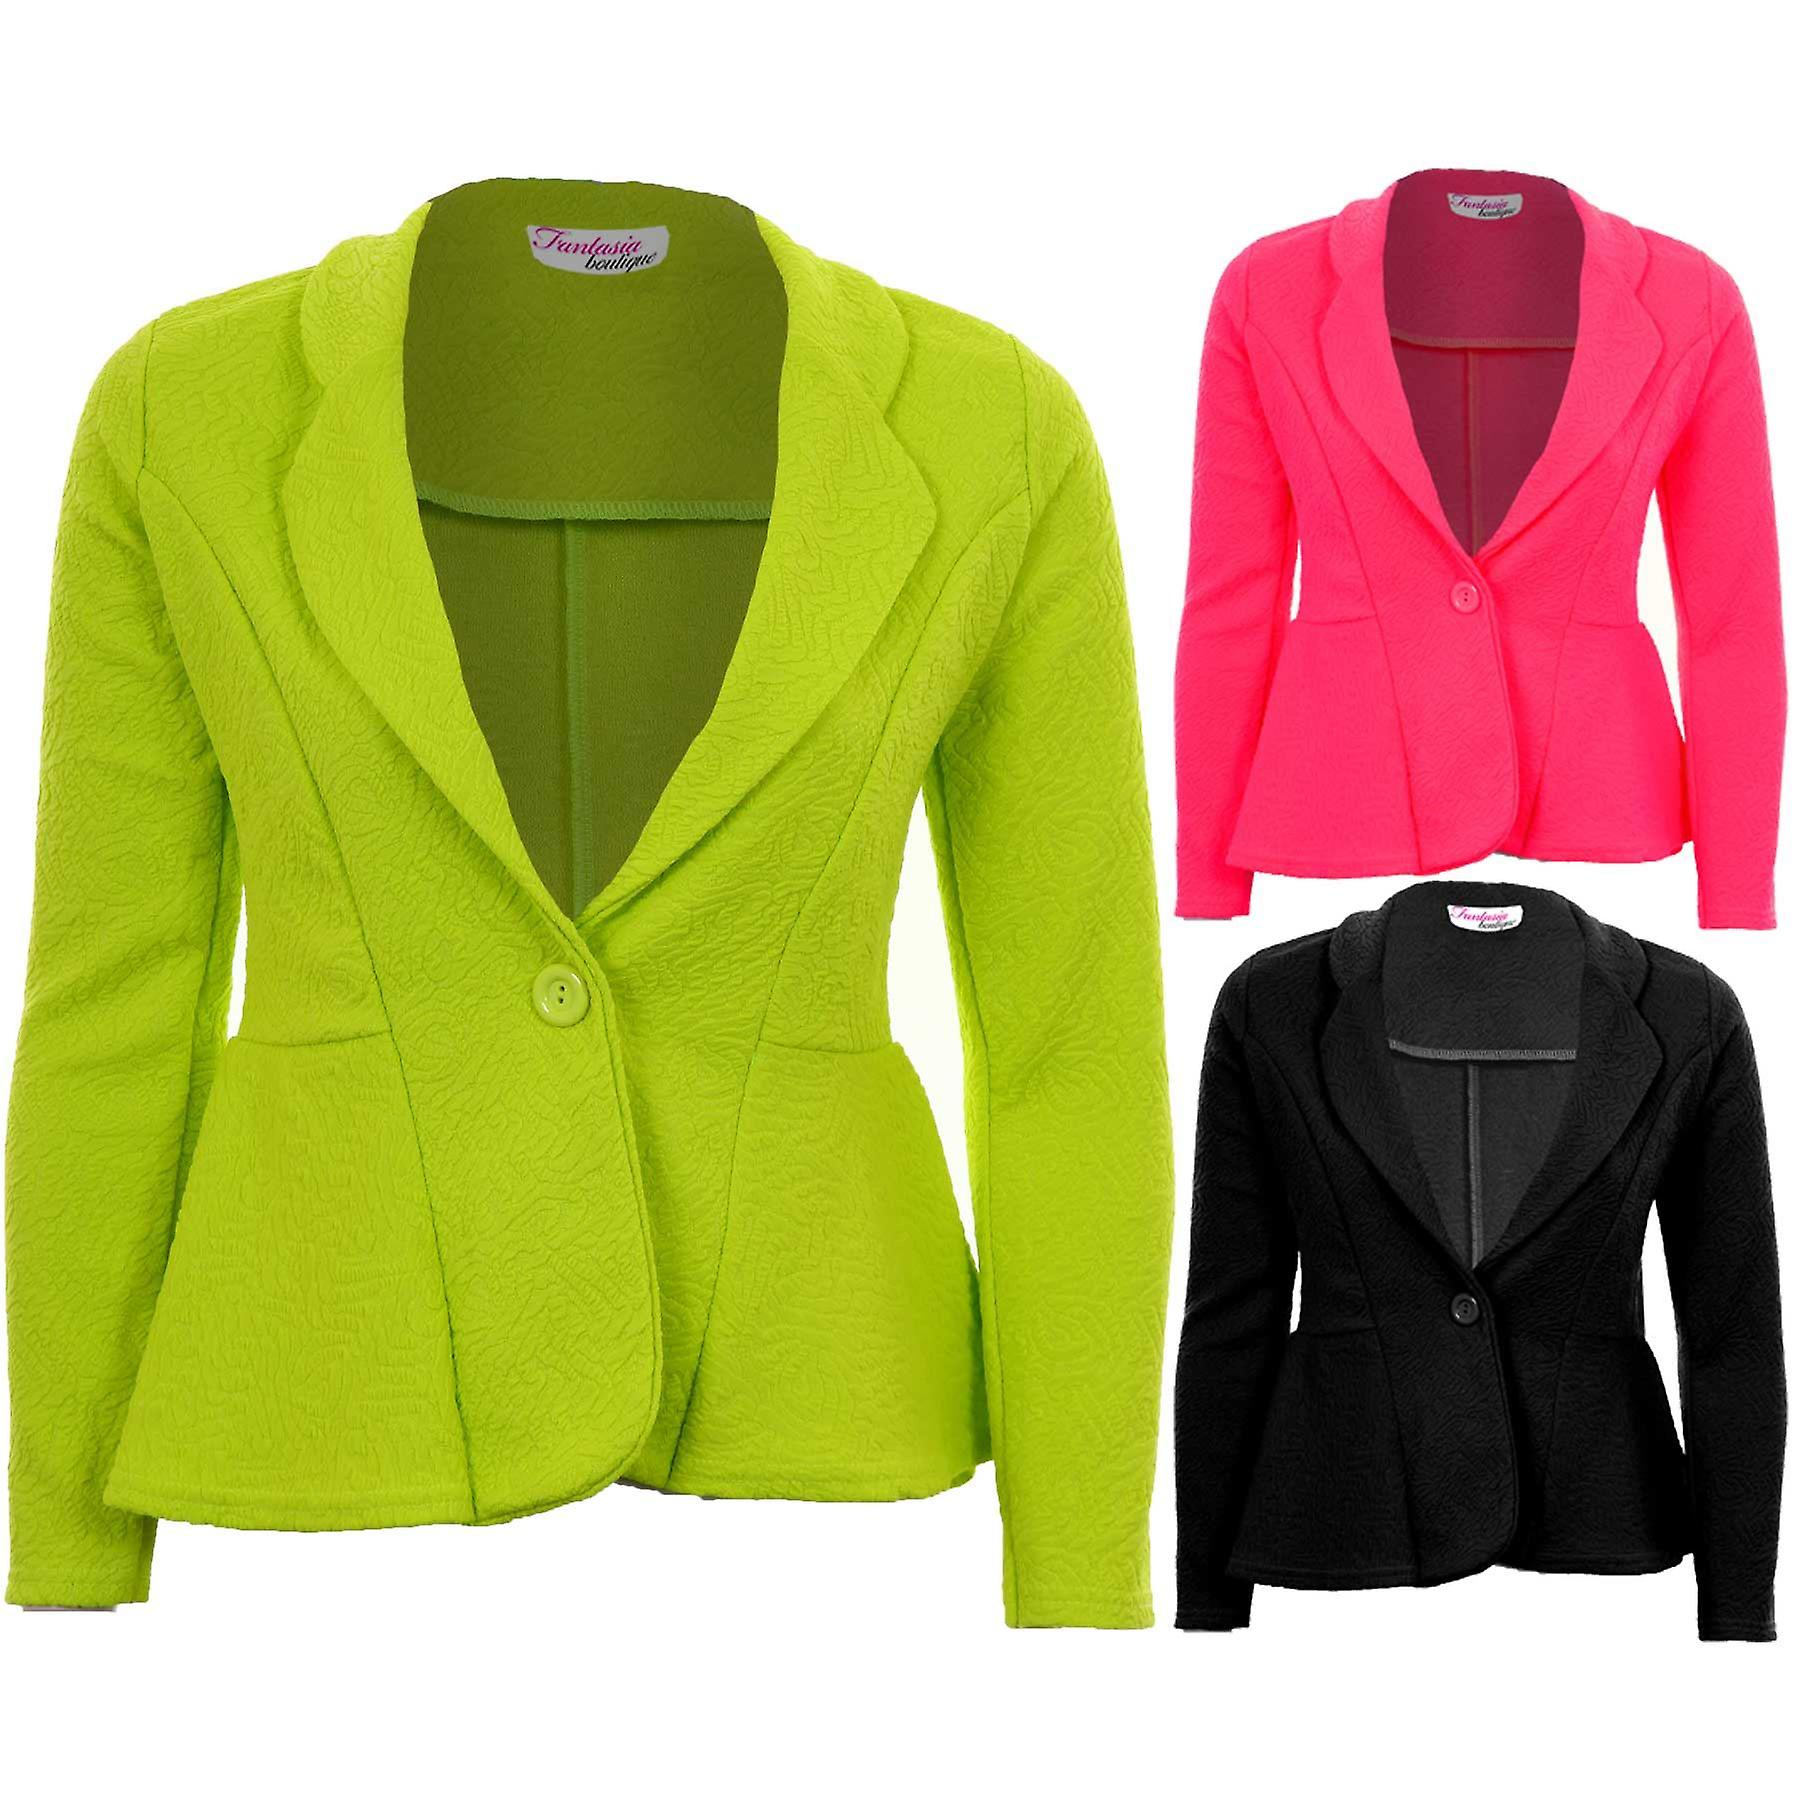 Ladies Textured One Button Luminous Frill Shift Party Office Blazer Women's Jacket